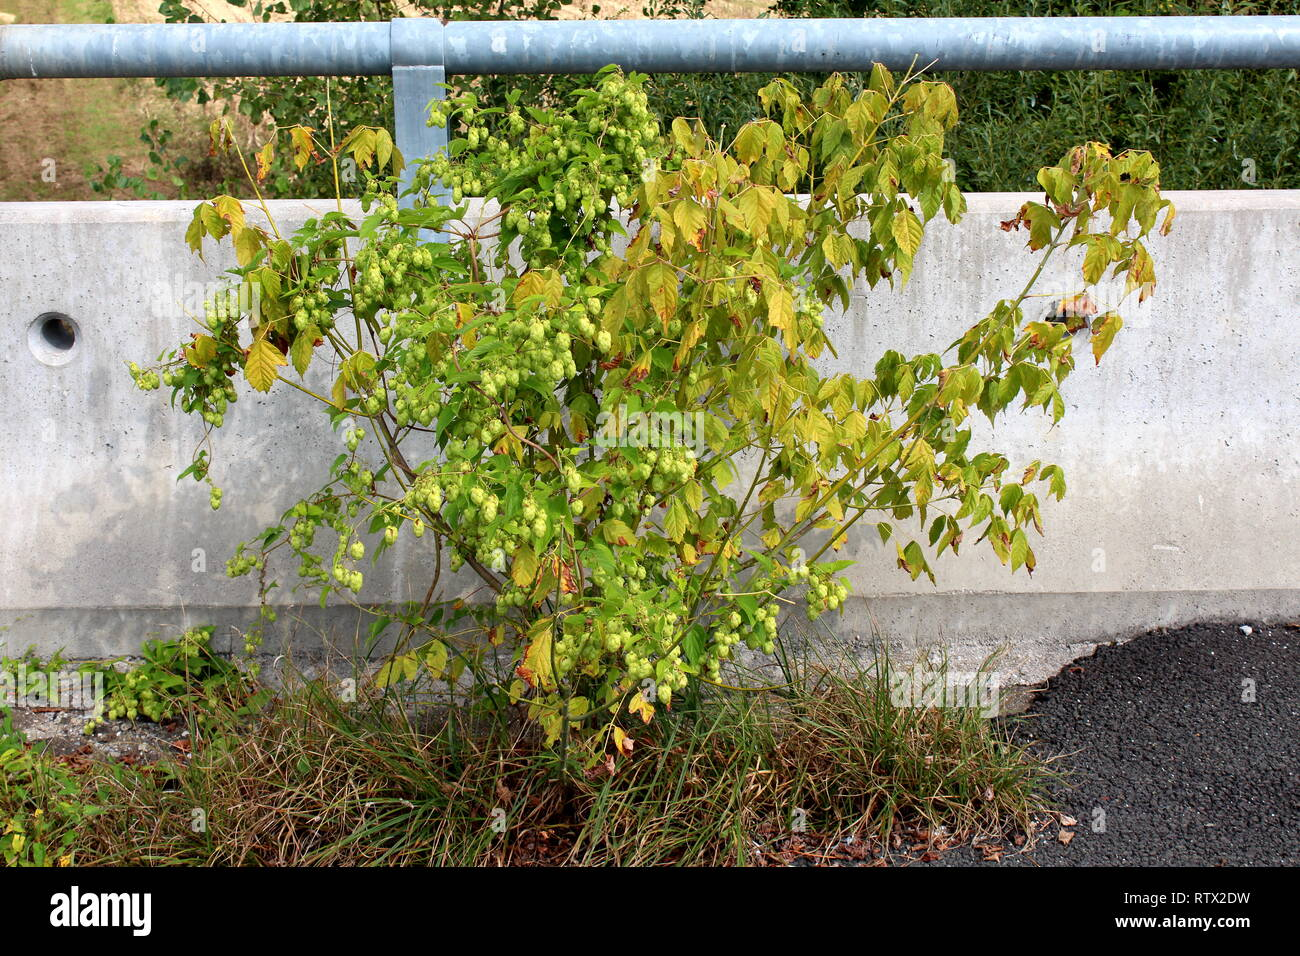 Common hop or Humulus lupulus or Hops dioecious perennial herbaceous climbing flowering bine plant growing in form of small bush next to concrete road - Stock Image